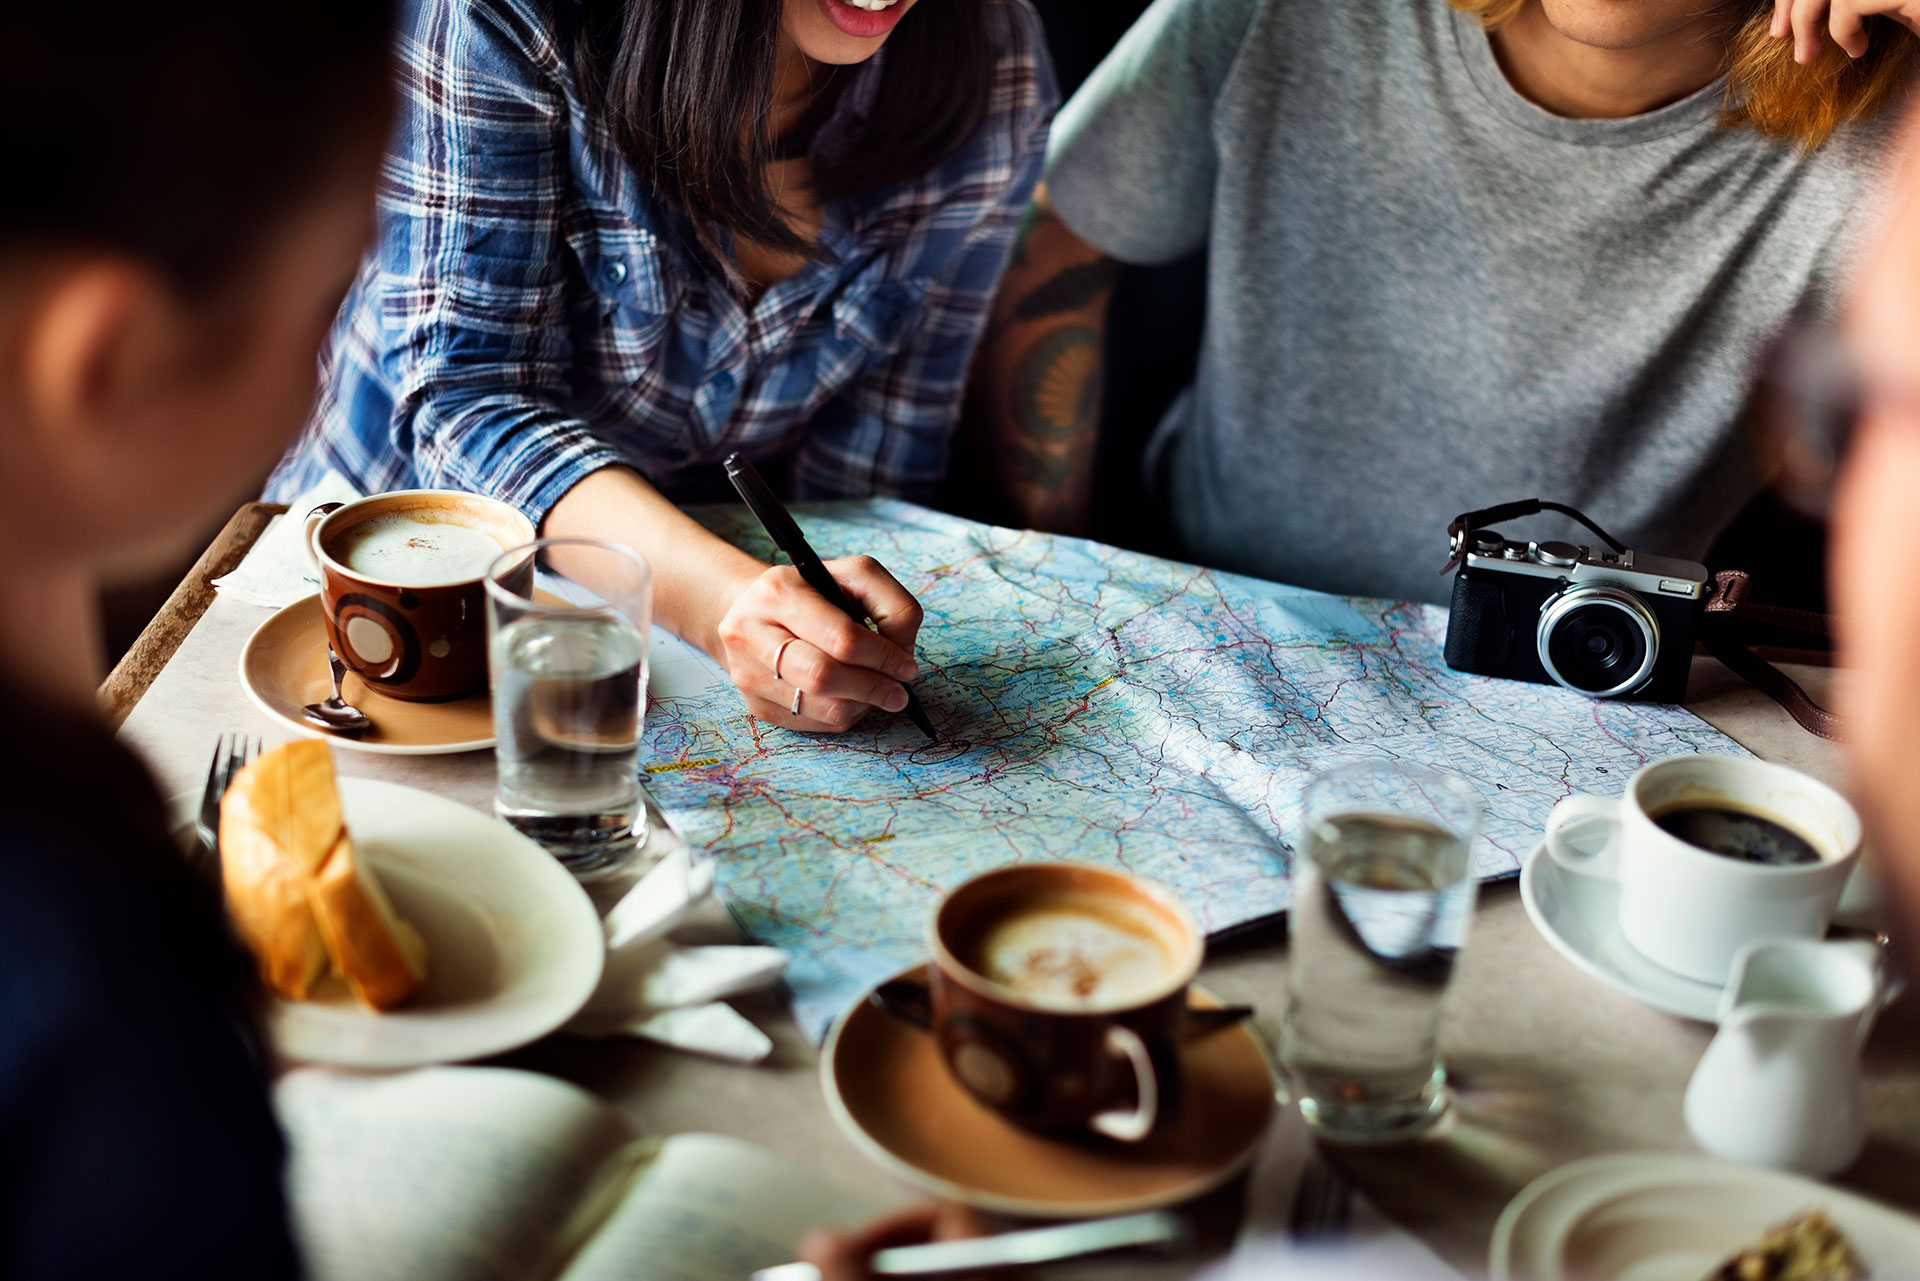 Planning a trip: 3 steps to live a good experience